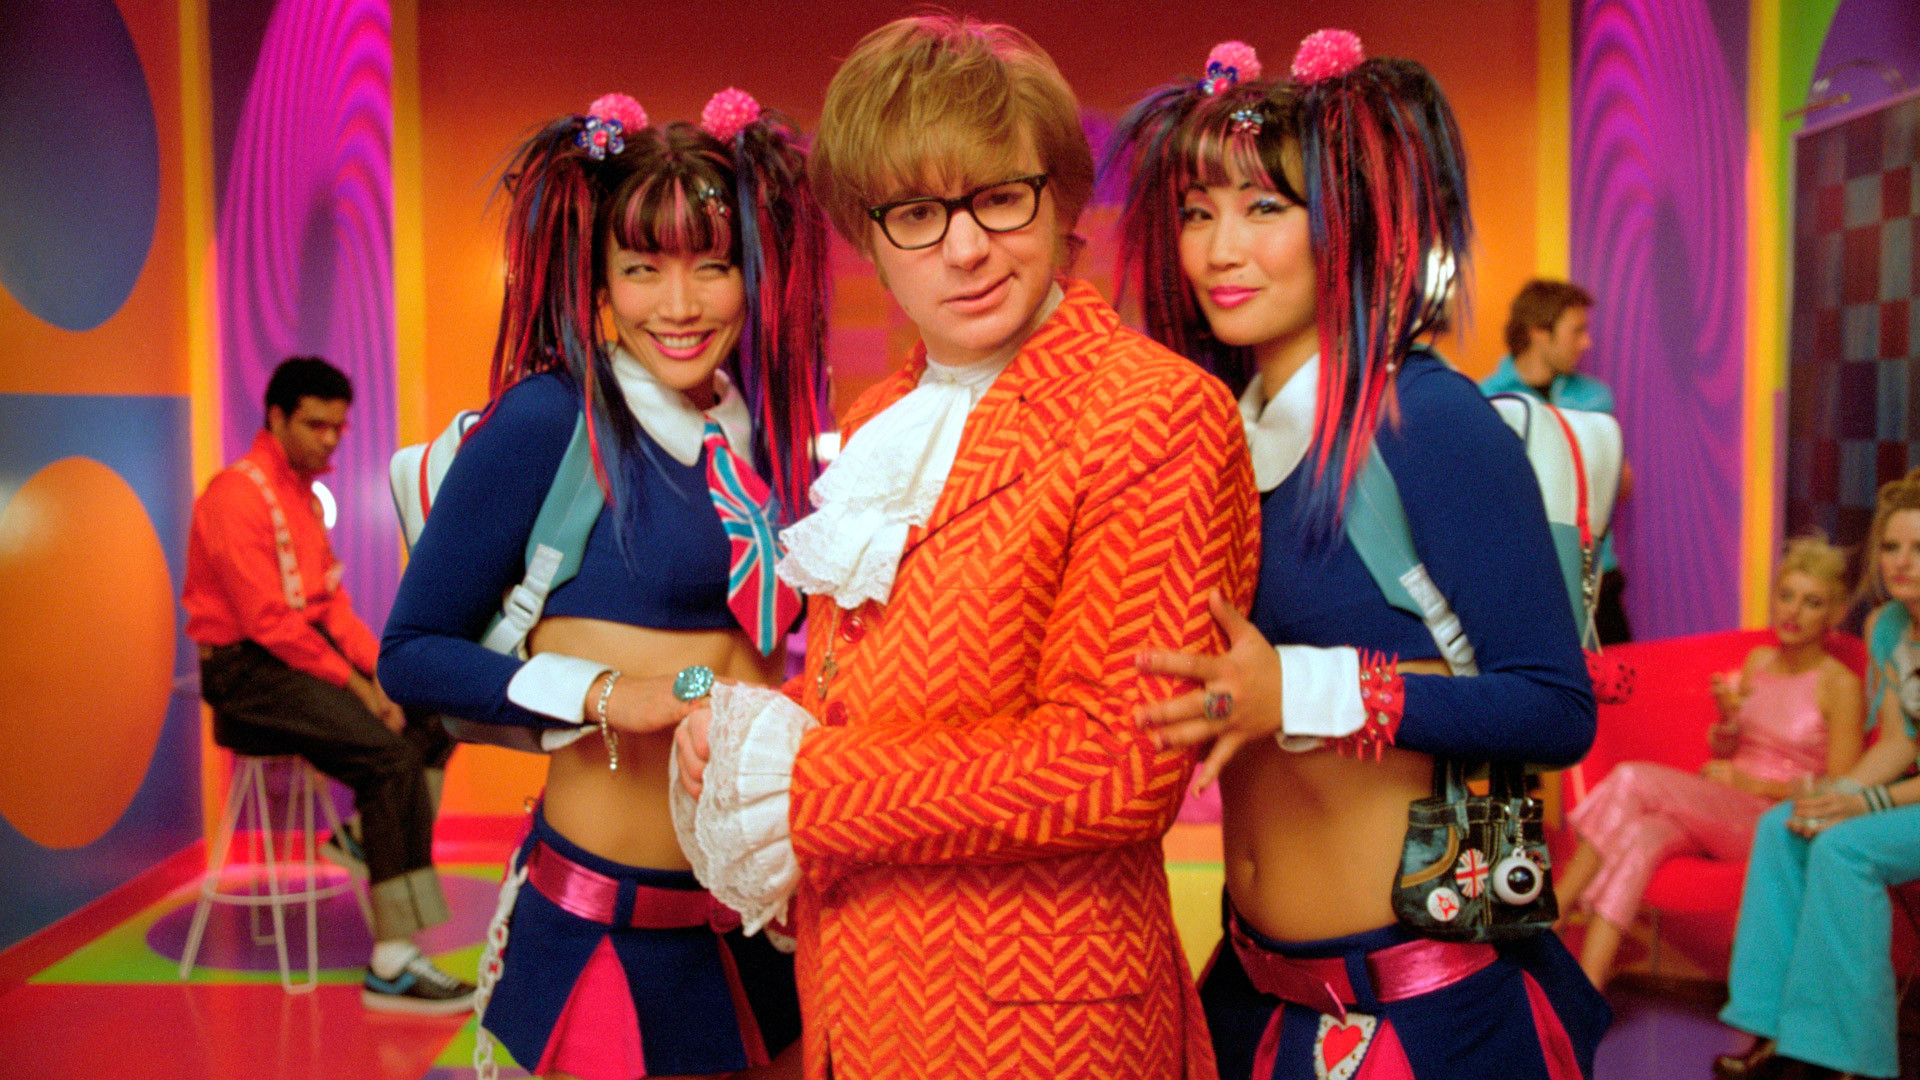 austin-powers-wallpaper-5